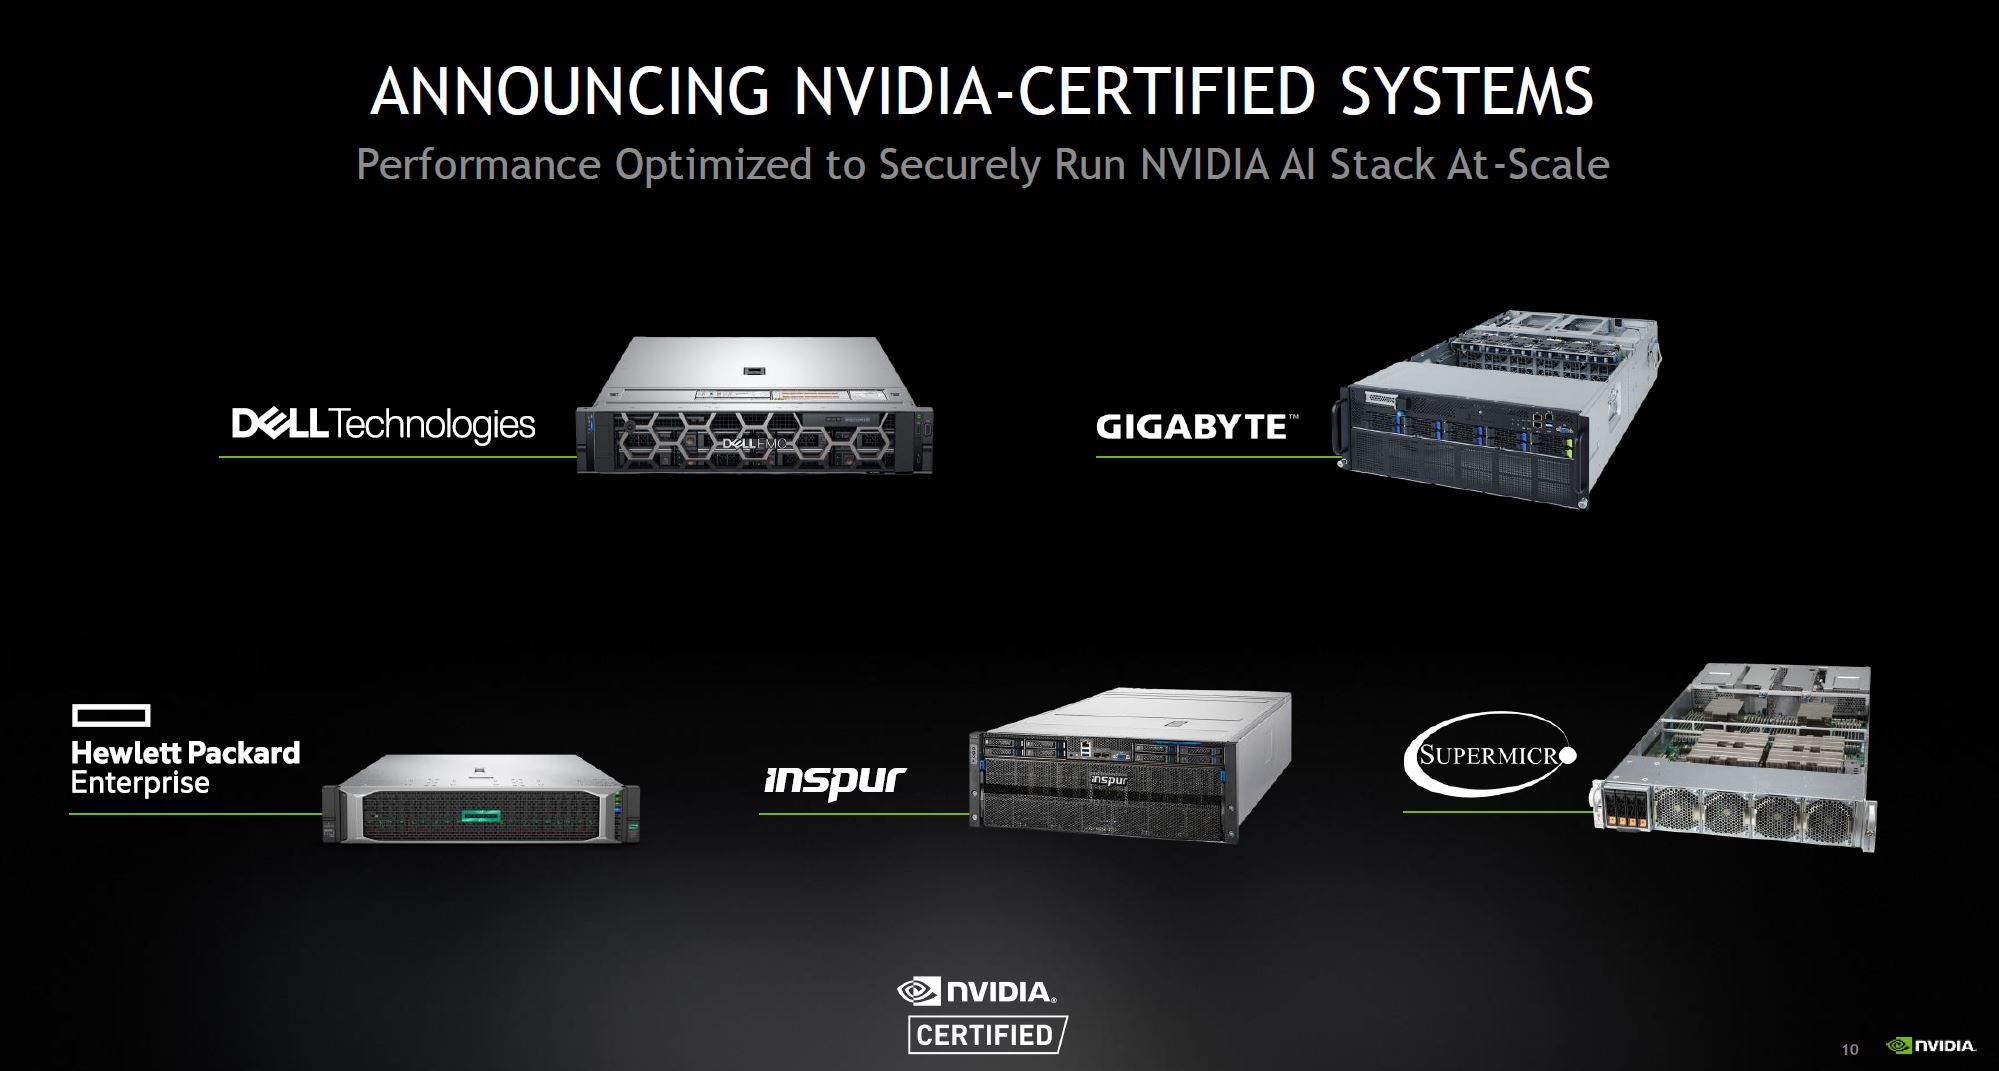 NVIDIA Certified Systems Partners